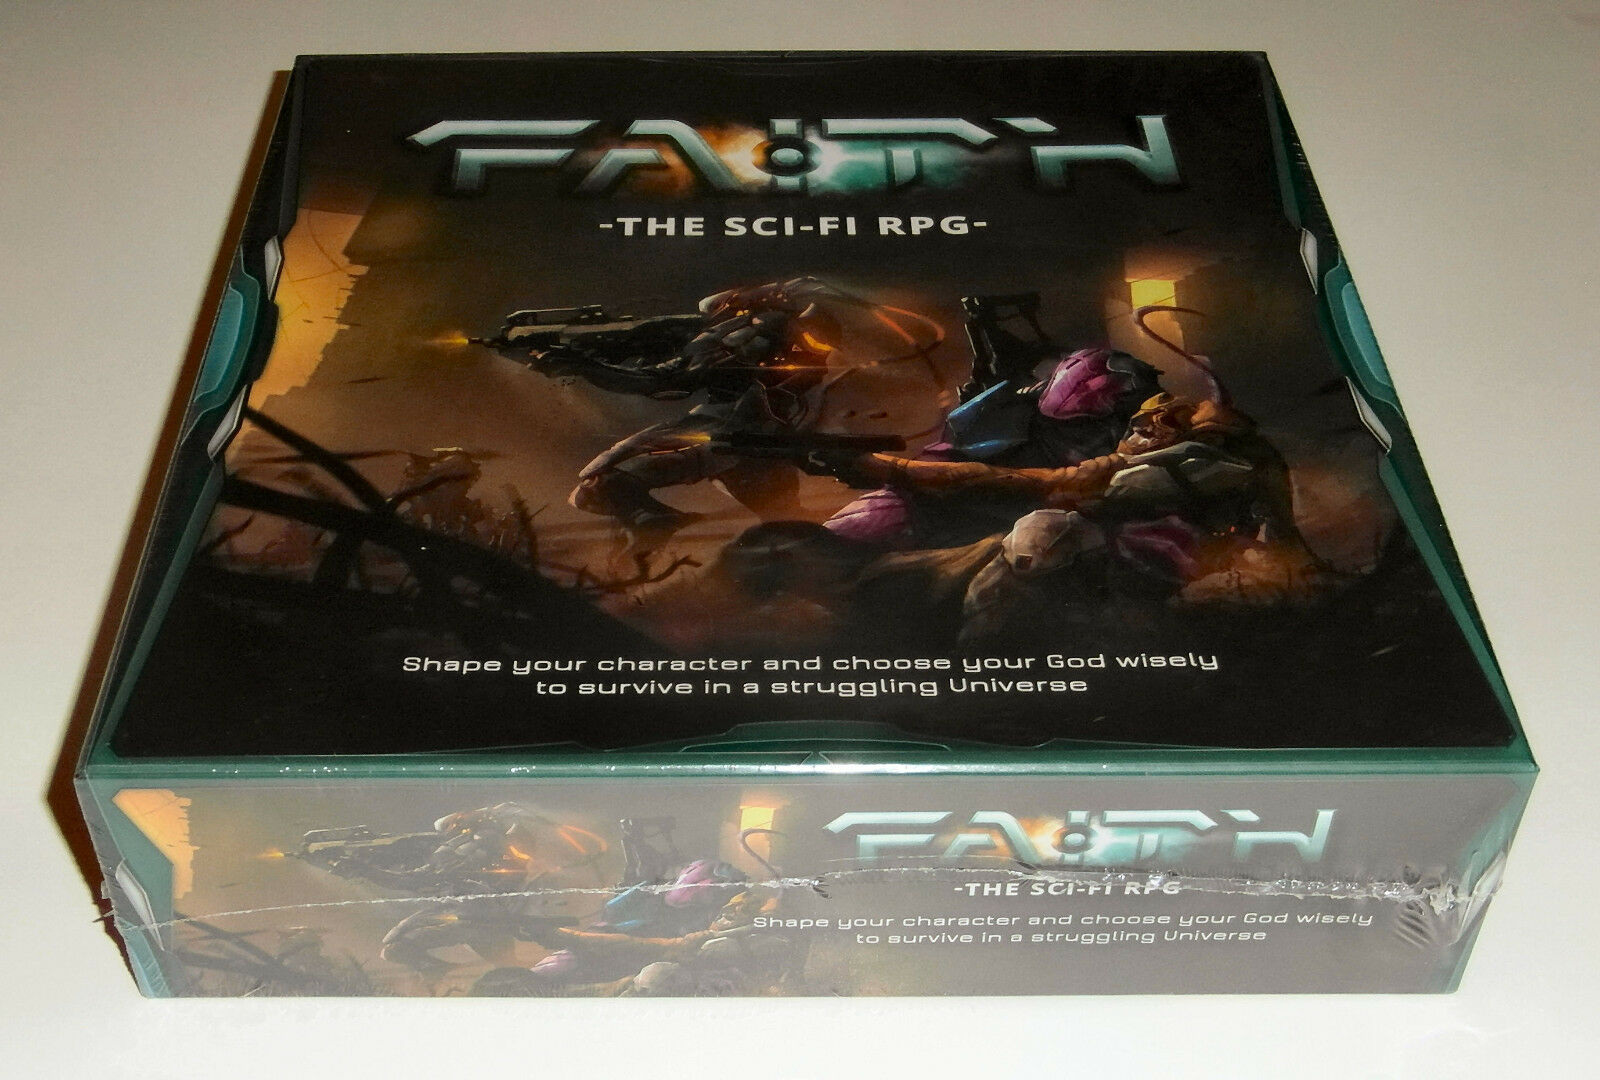 FAITH  The Sci-Fi RPG - Burning Games - 2015